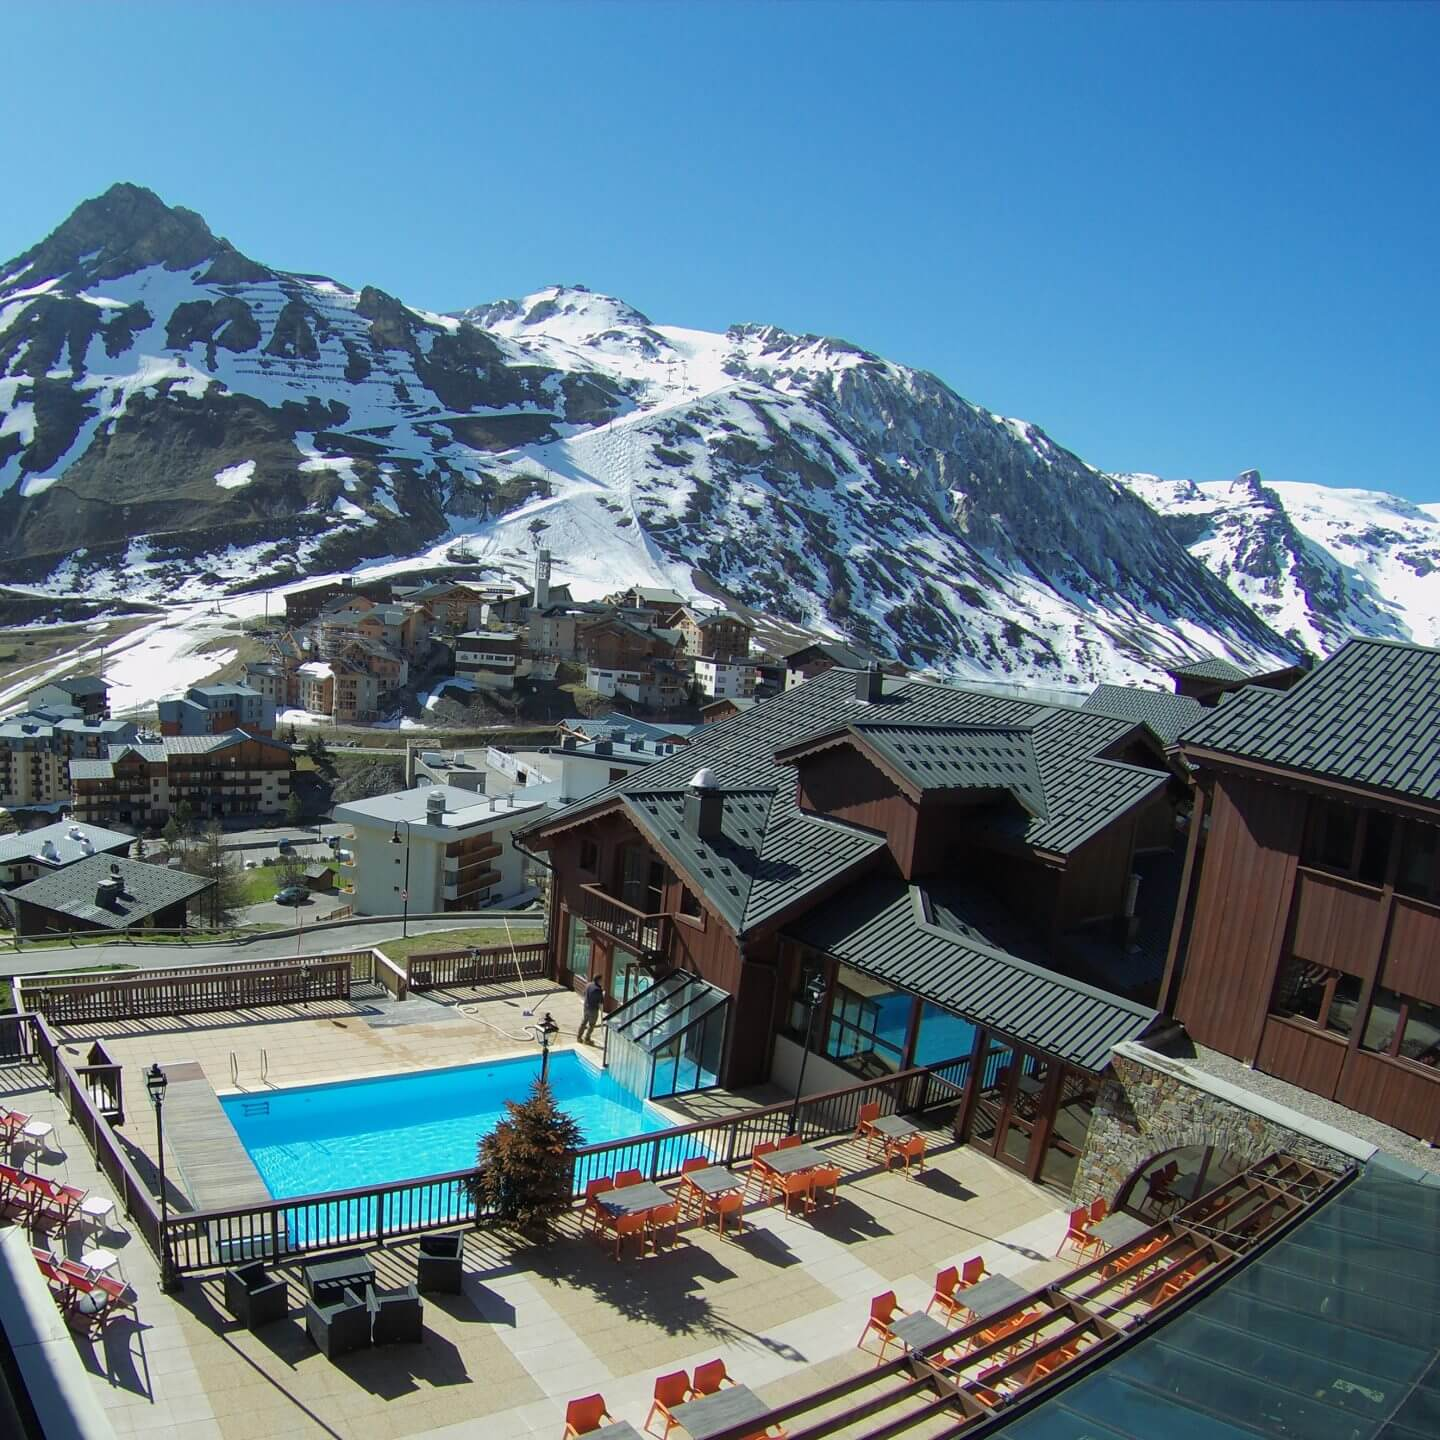 hotel montana, hotel montana tignes, tomtom bandit, tomtombandit, learning to snowboard,